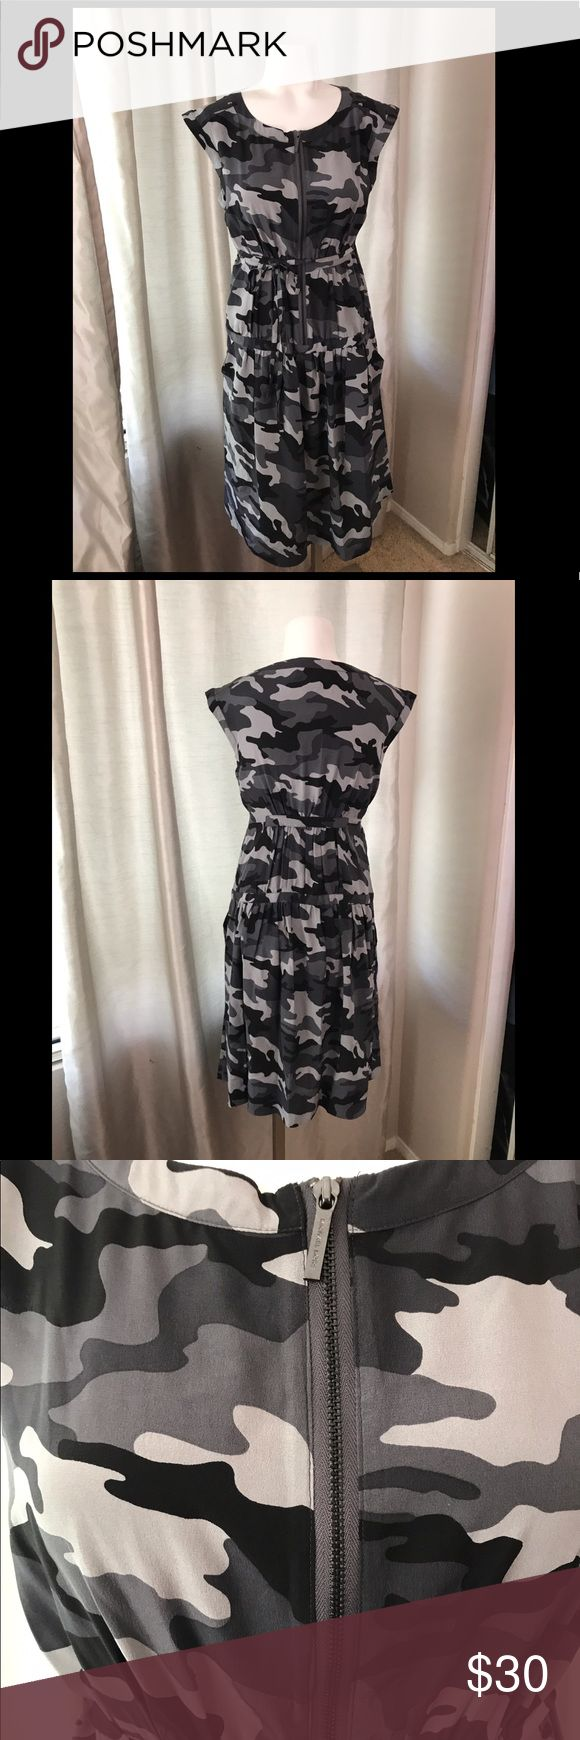 Michael Kors Dress Great condition. Camo design KORS Michael Kors Dresses Midi